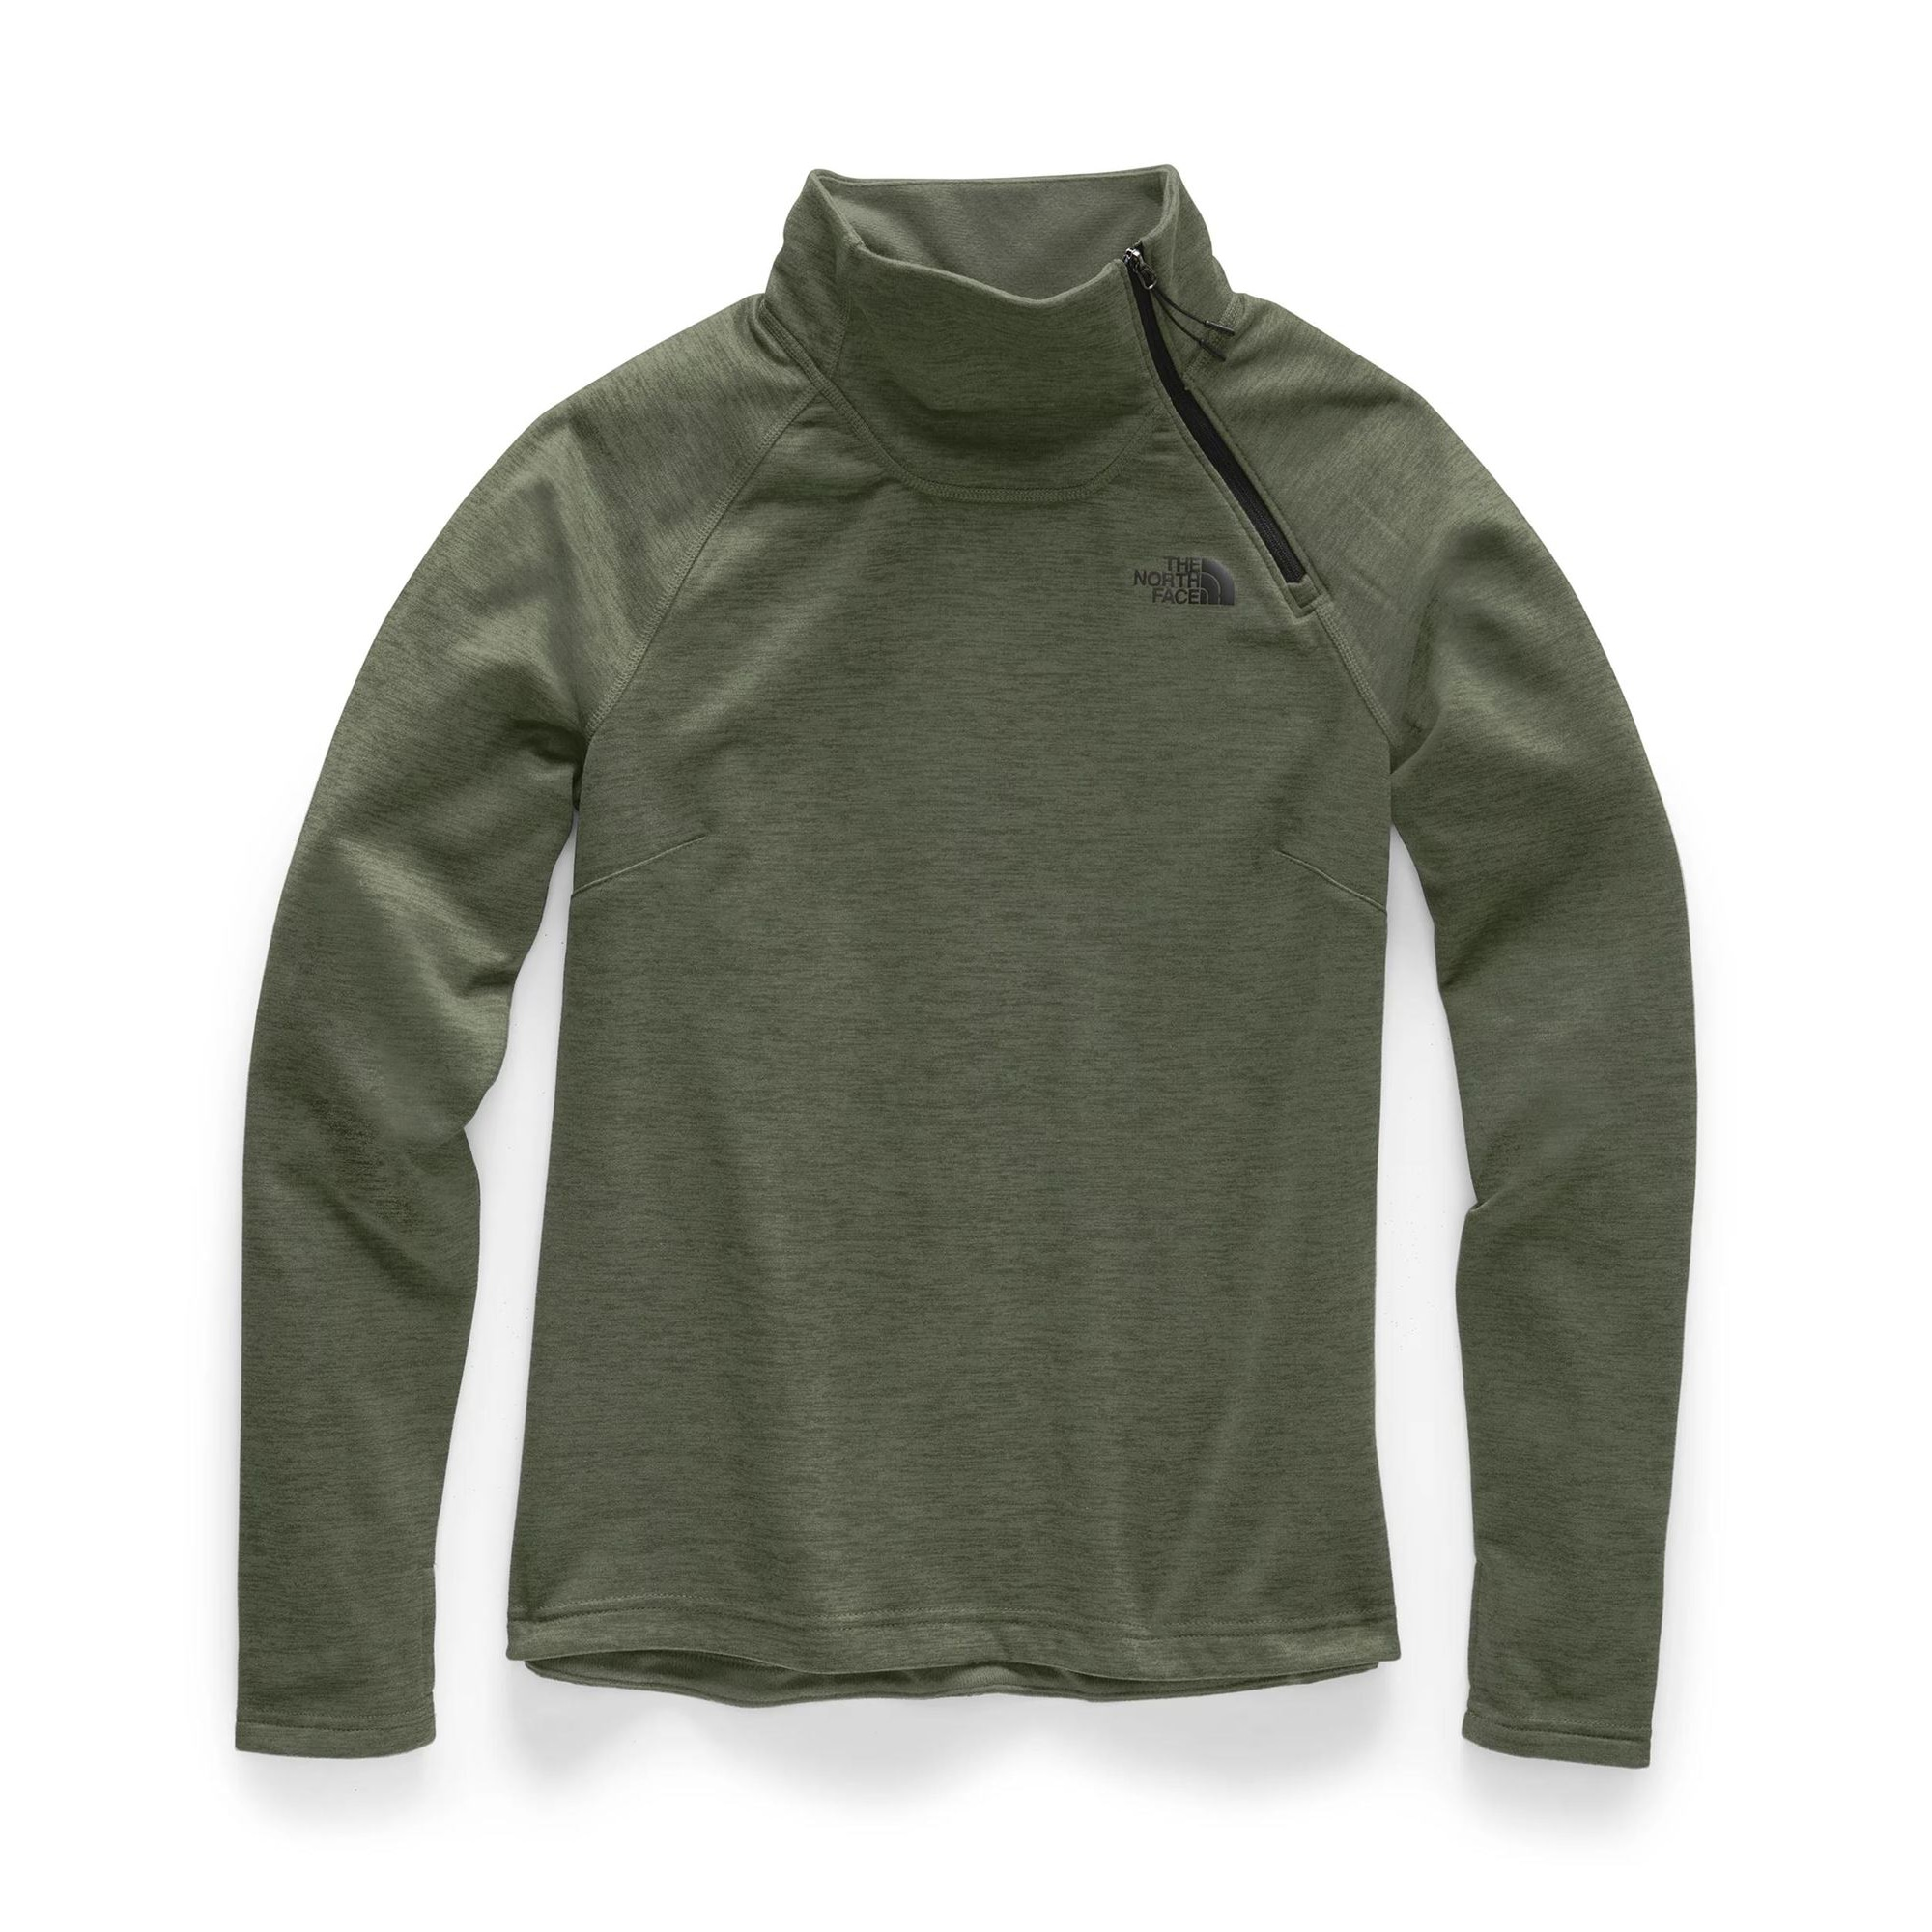 CANYONLANDS 1/4 ZIP - WOMEN'S